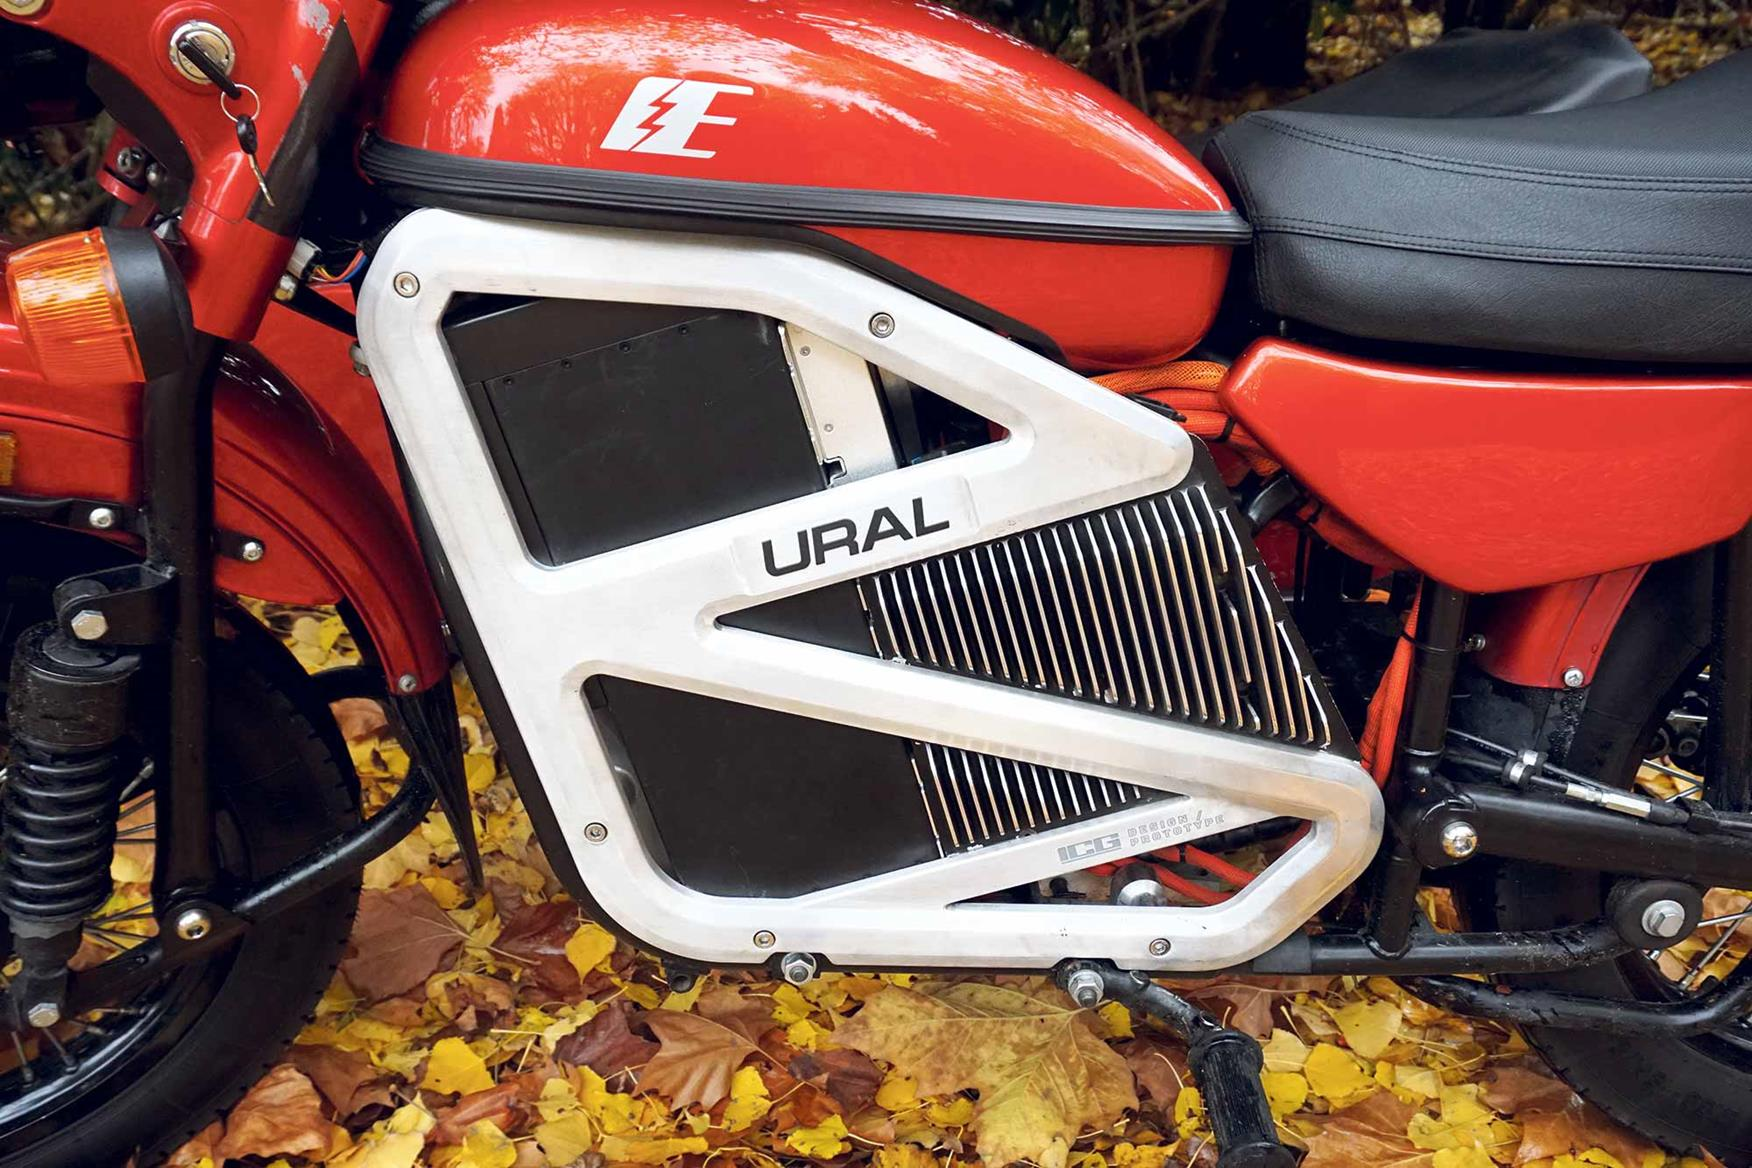 Powering the Ural is the electric motor from a Zero S